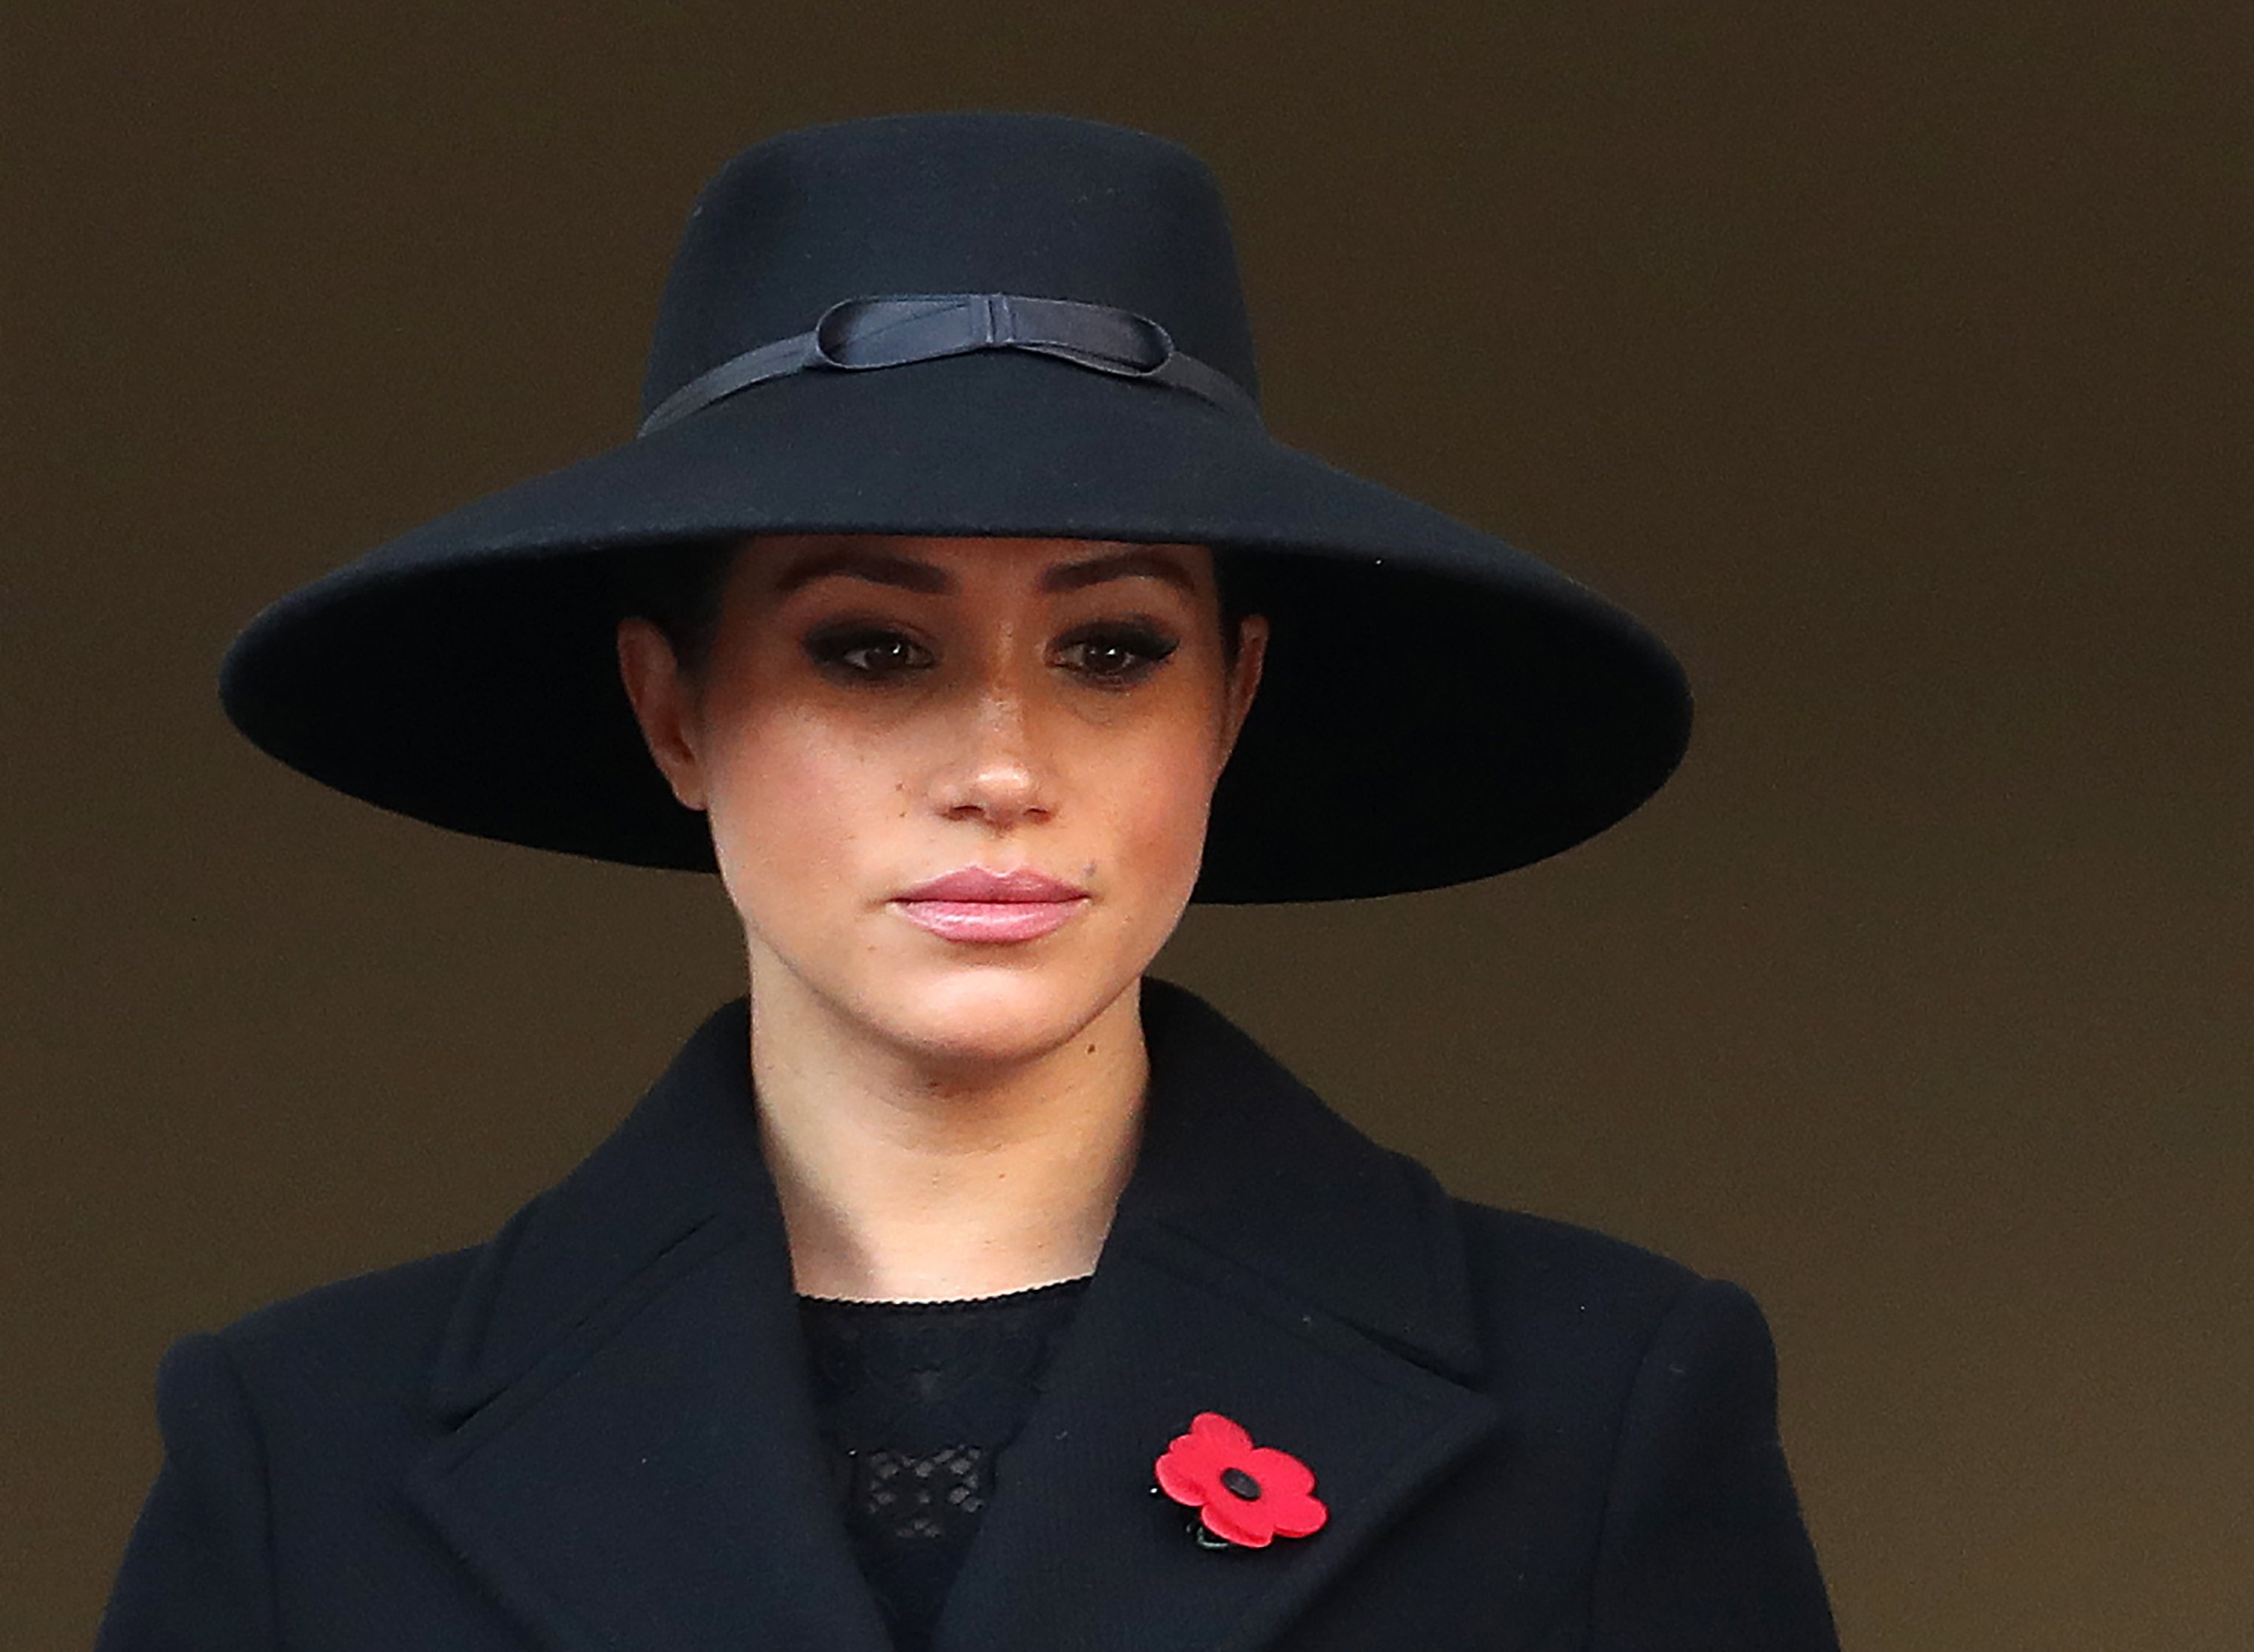 Duchess Meghan at the annual Remembrance Sunday memorial on November 10, 2019, in London, England | Photo: Getty Images